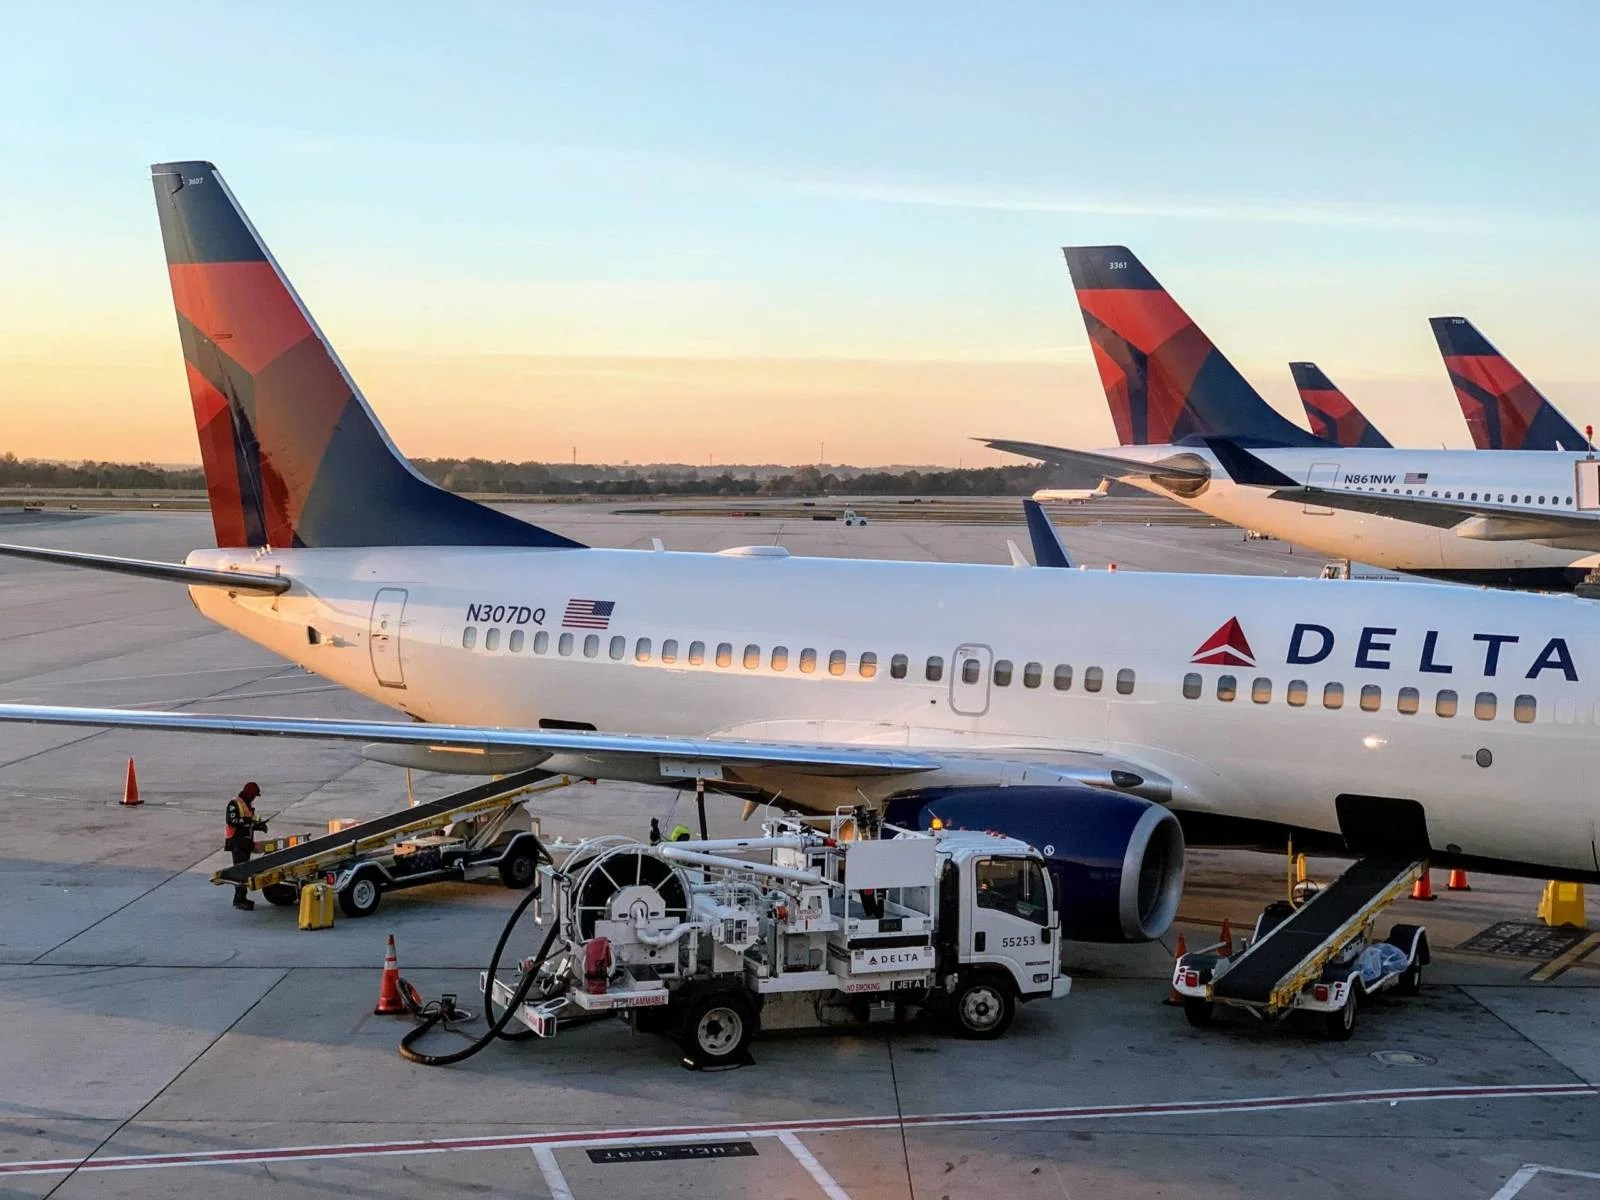 Delta splits $1.6 billion in 2019 profits among 90,000 employees